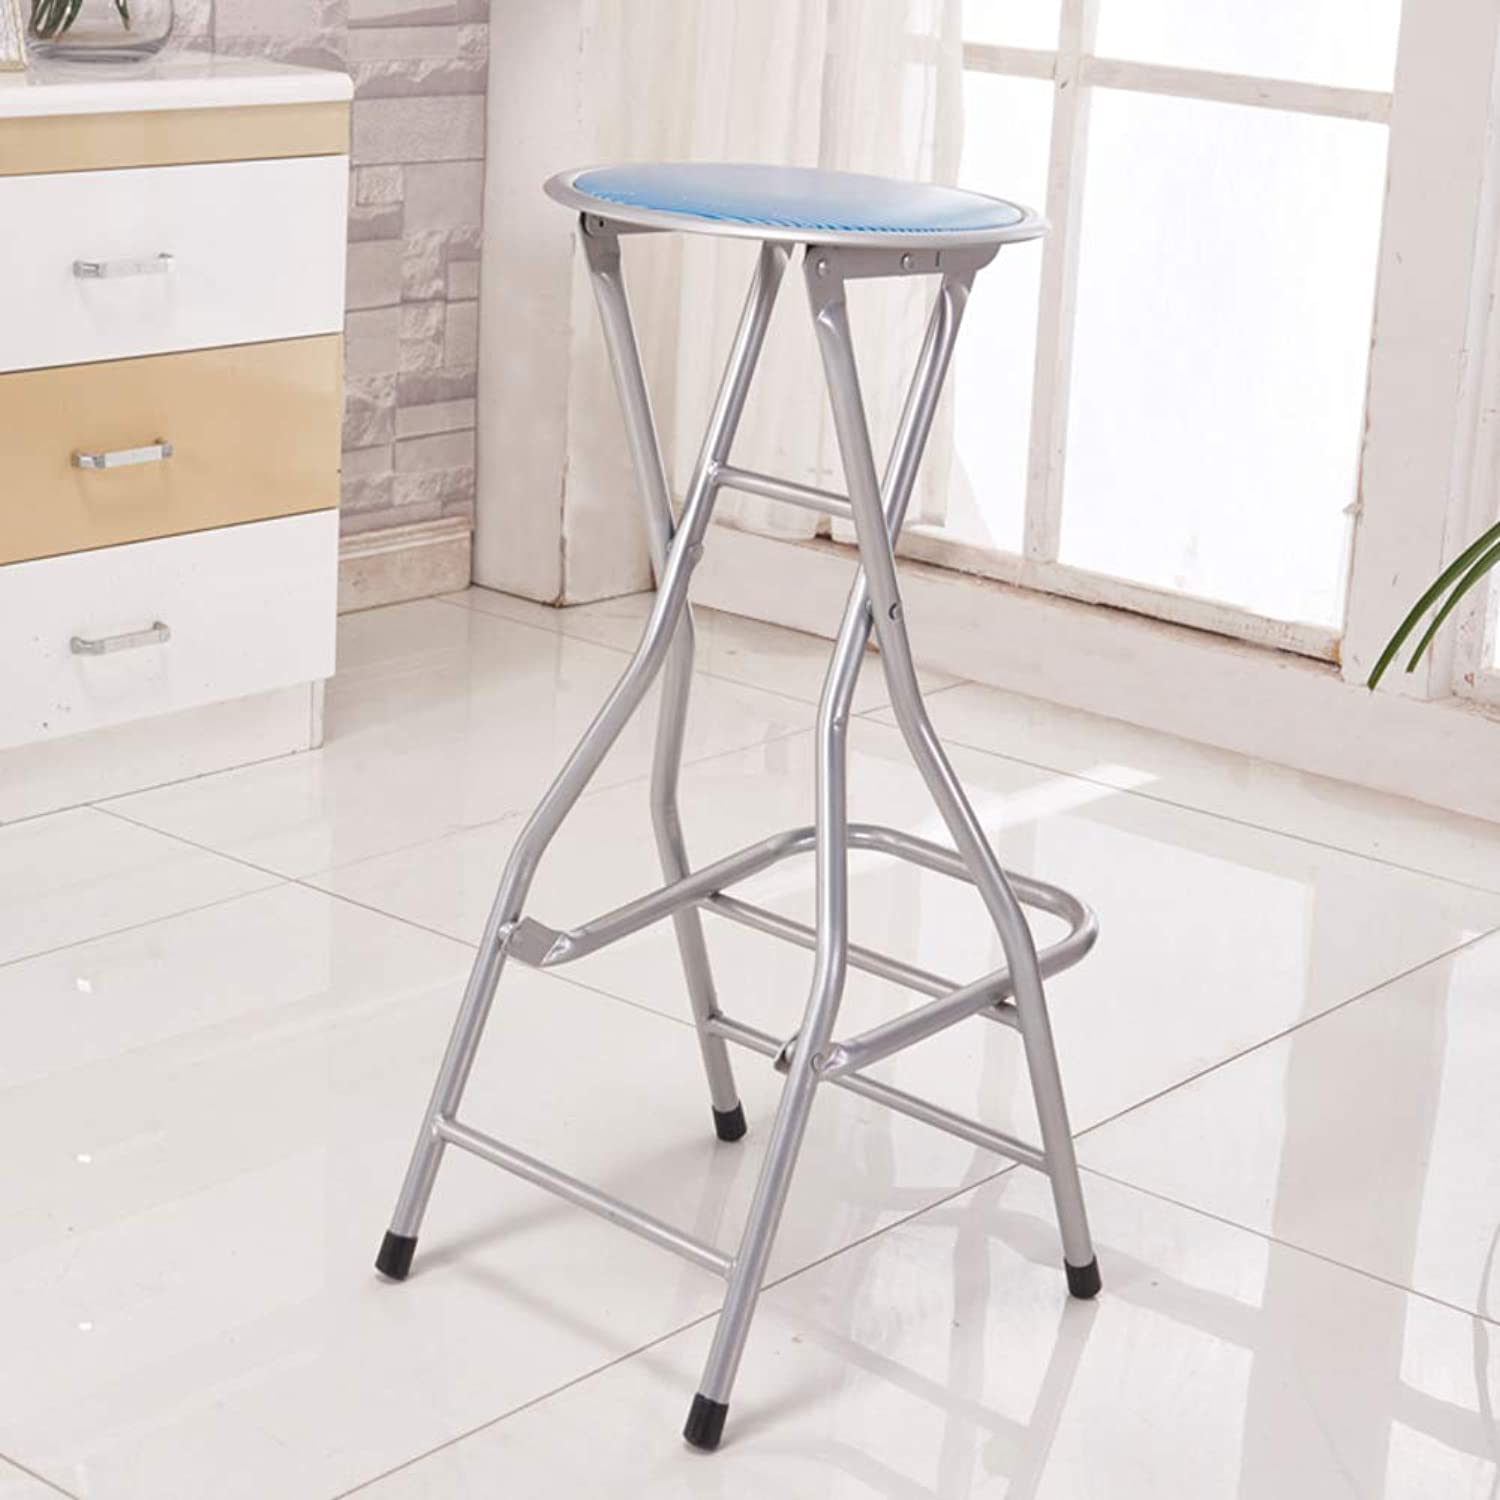 Barstools with Back, Folding Chair, Metal Pub Chair, Counter bar Stool Studio Chair for bar Home-bluee D31xH66cm(12x26inch)